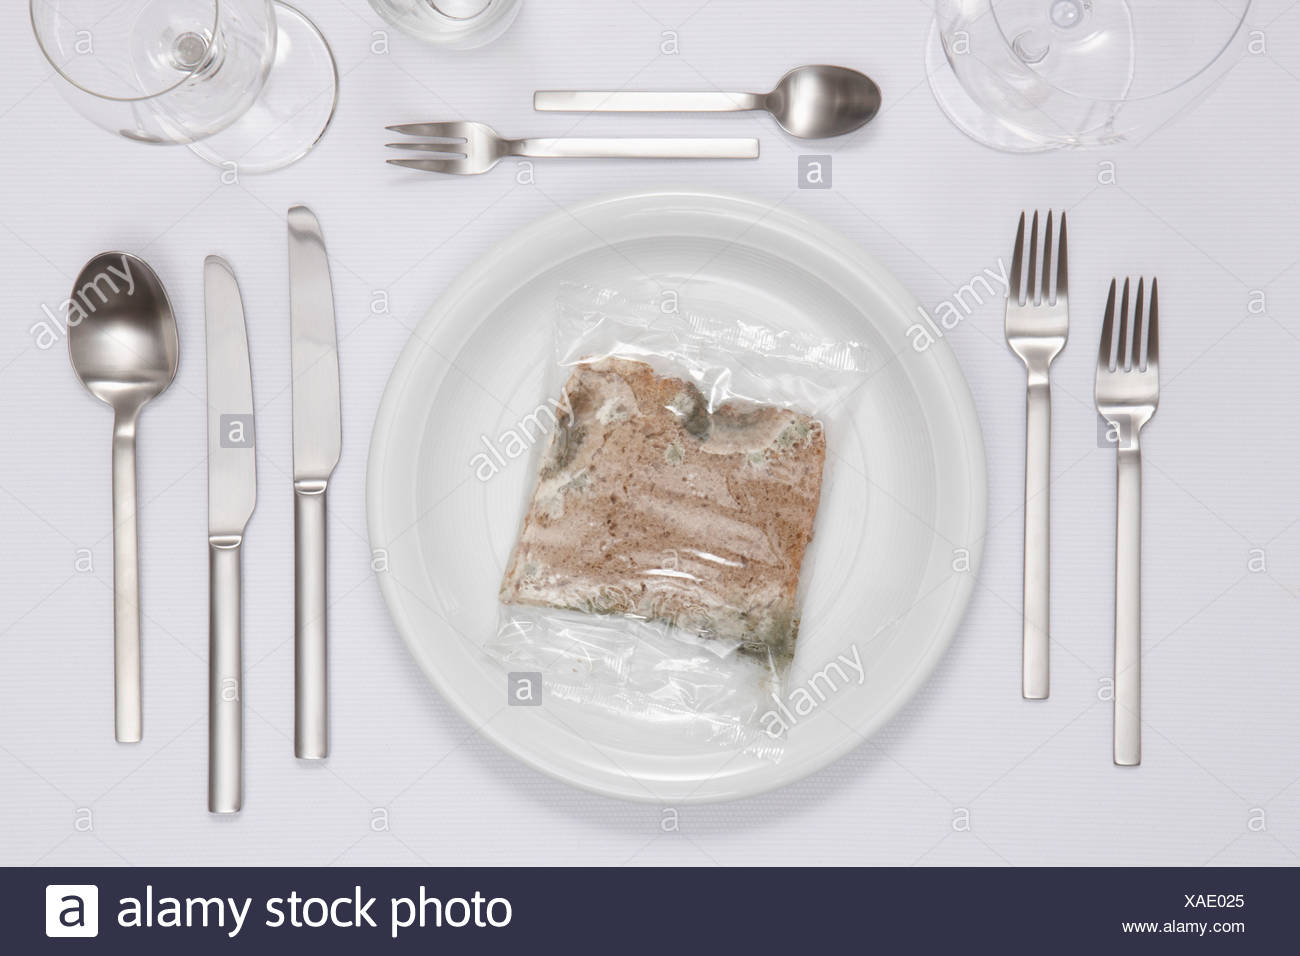 Moulded bread in plate - Stock Image